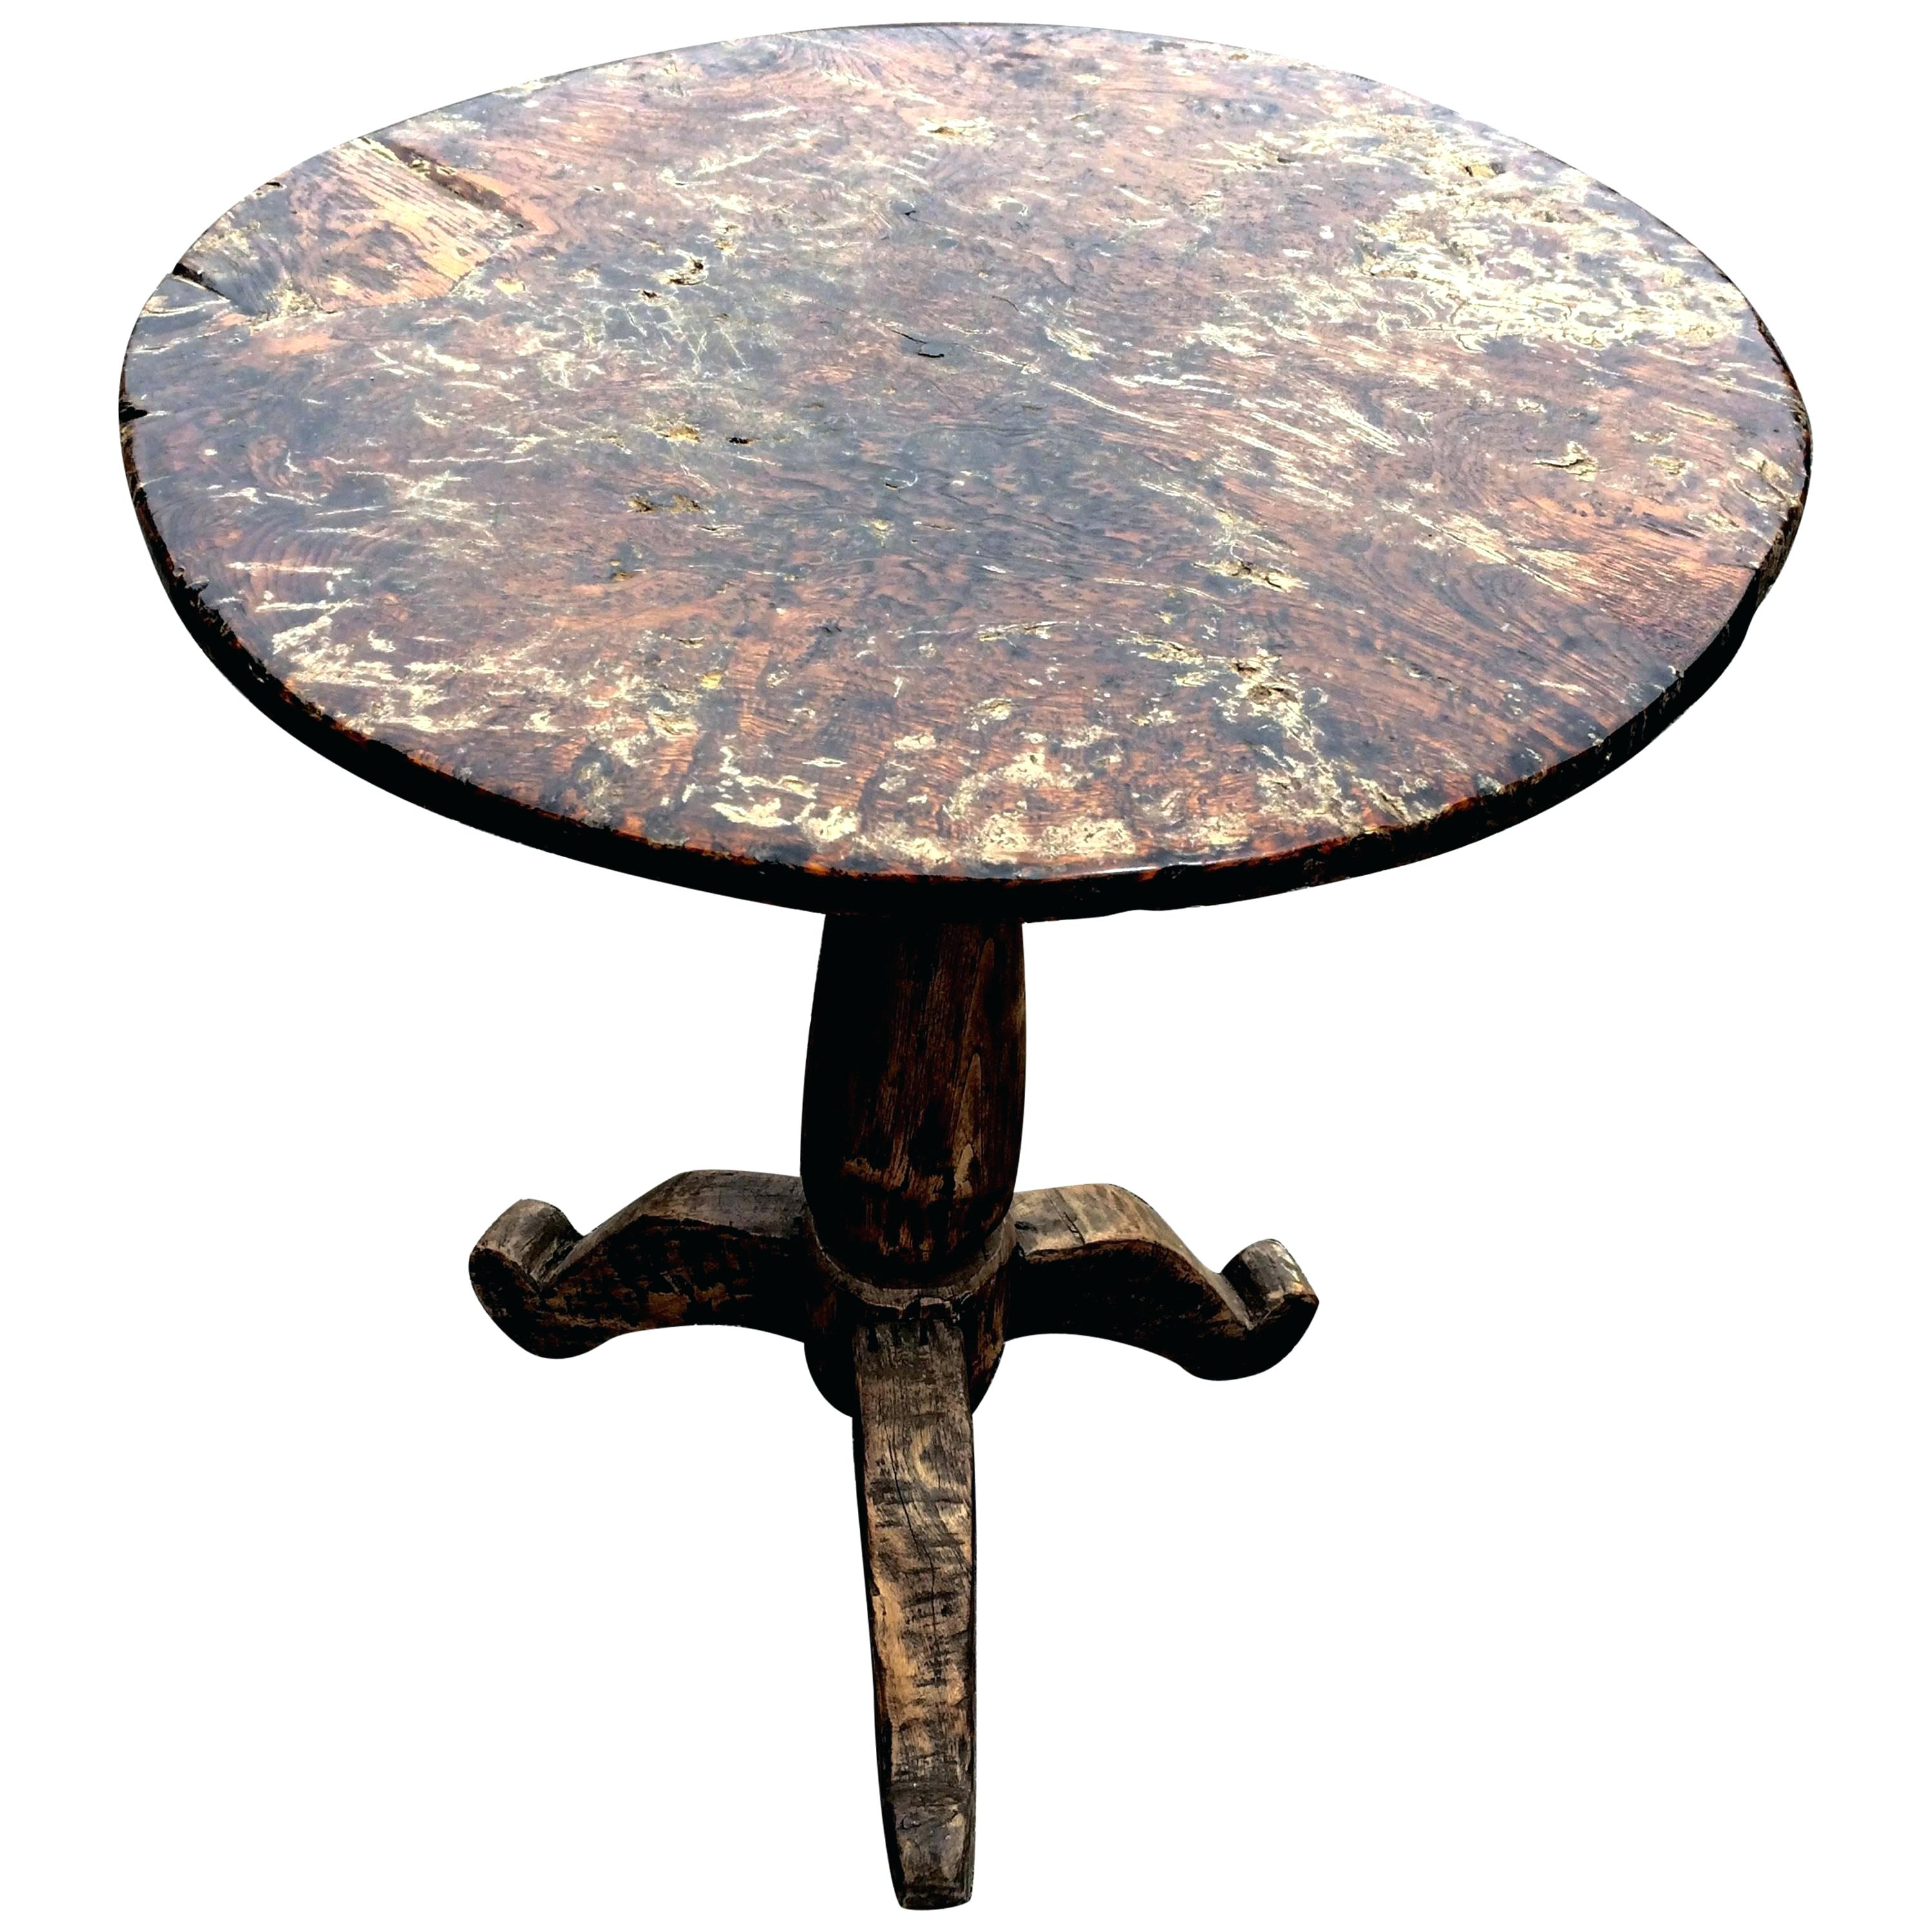 round pedestal side table black accent superb primitive carved wood end for base west elm abacus floor lamp better homes and gardens furniture glass bedside lamps outdoor plans